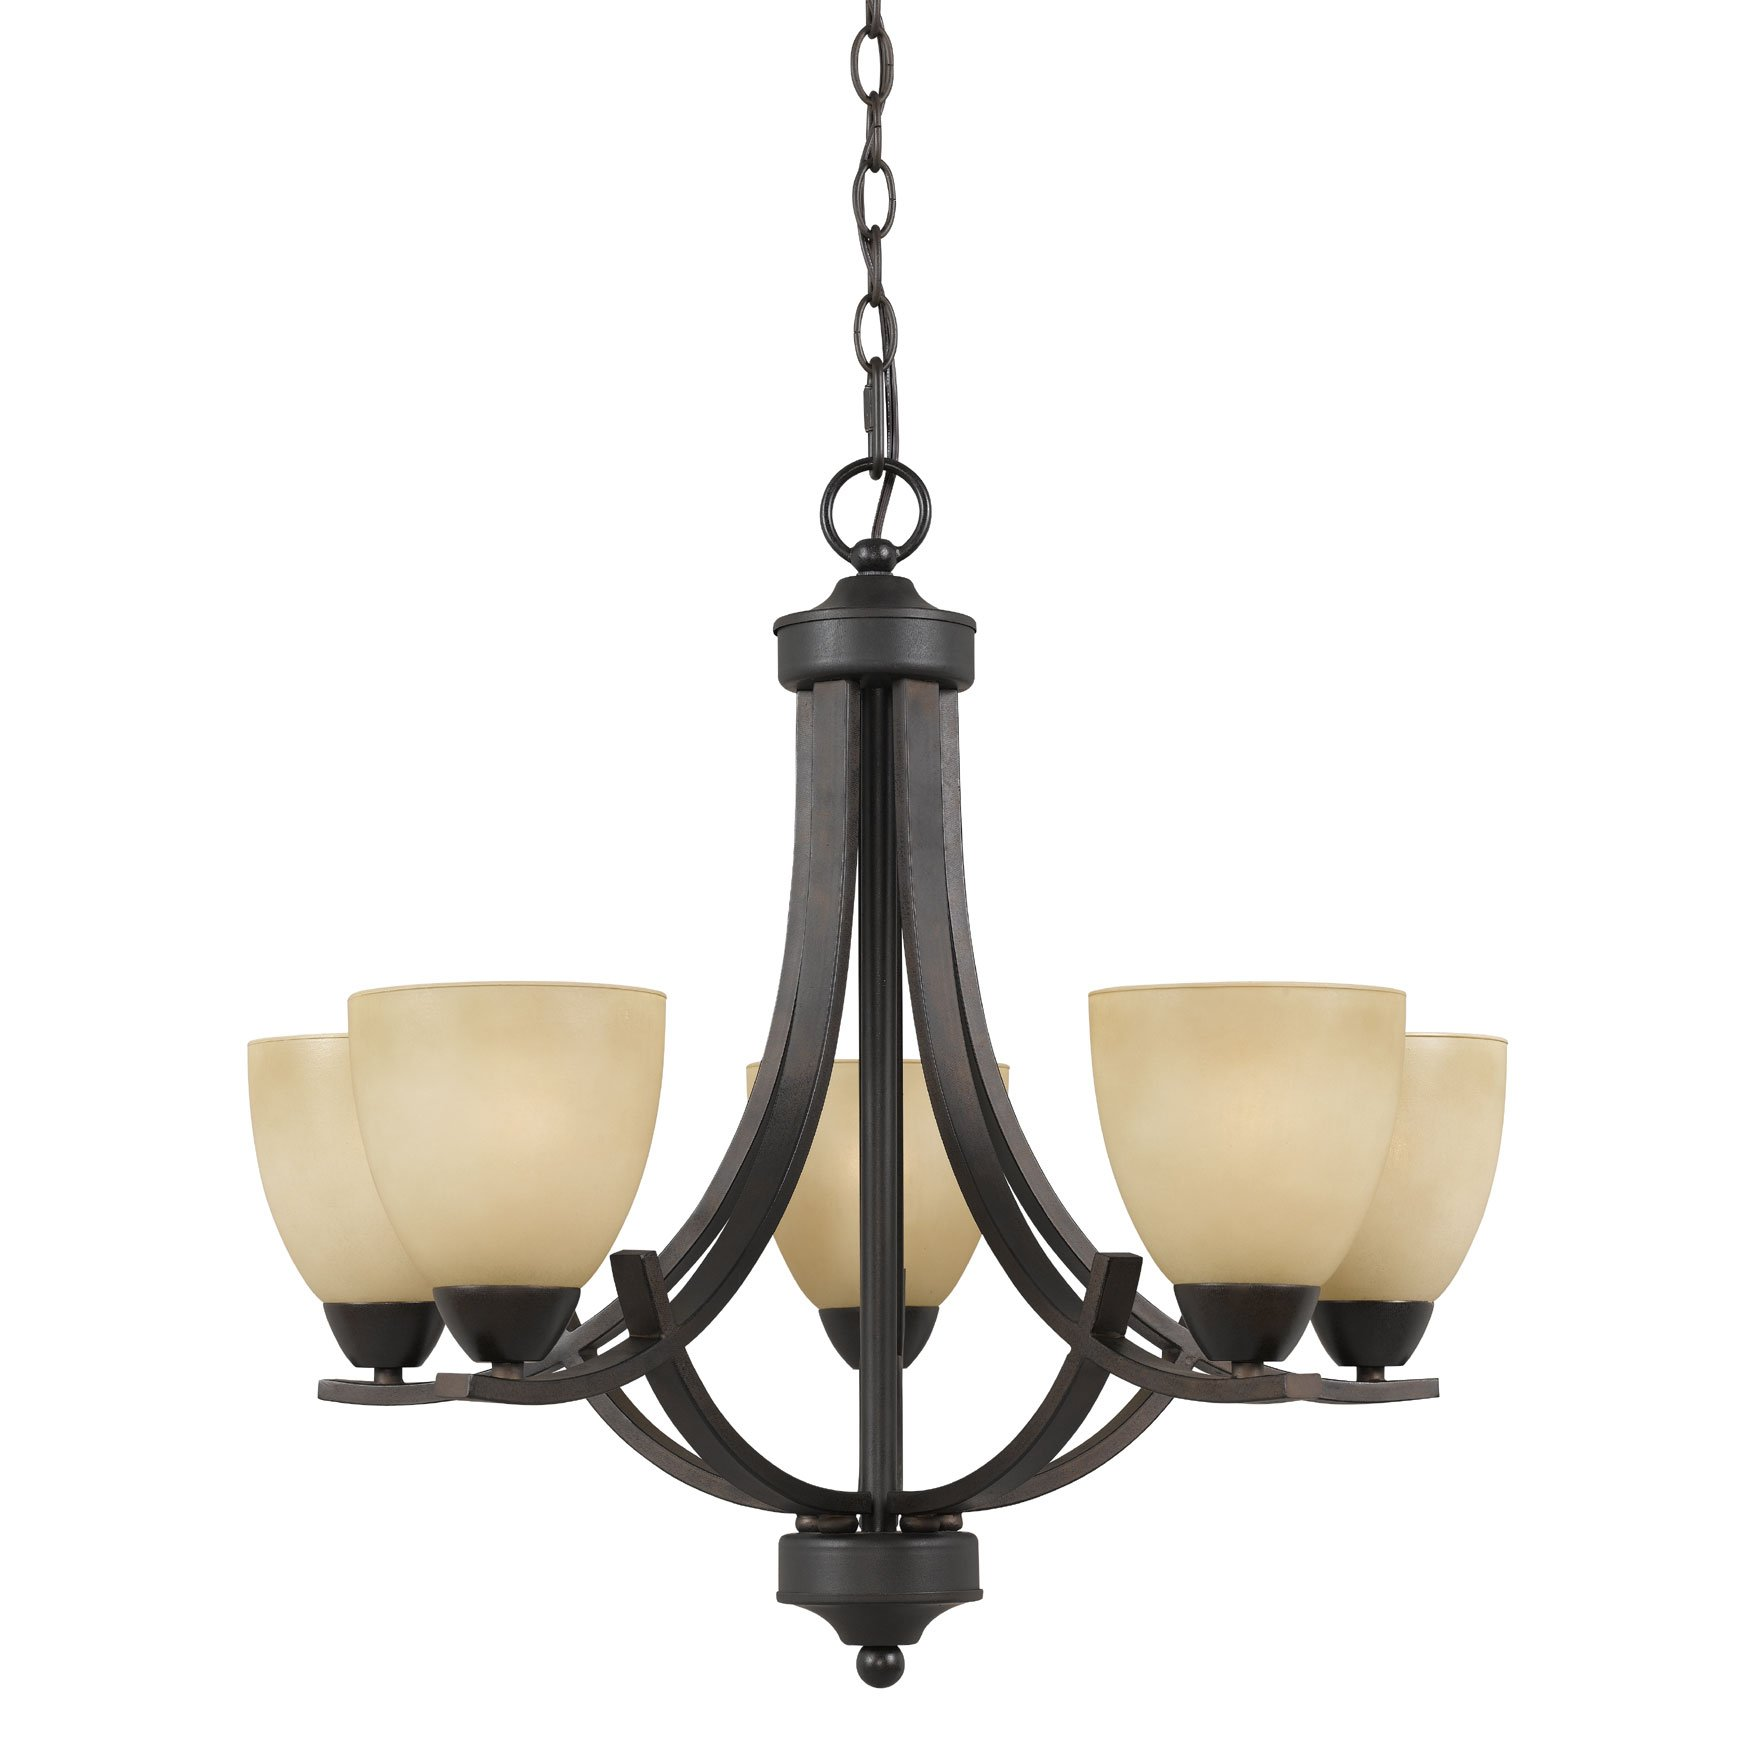 Value Collection 8000 5 Light Chandelier In A Bronze Finish Model-8000-03-05